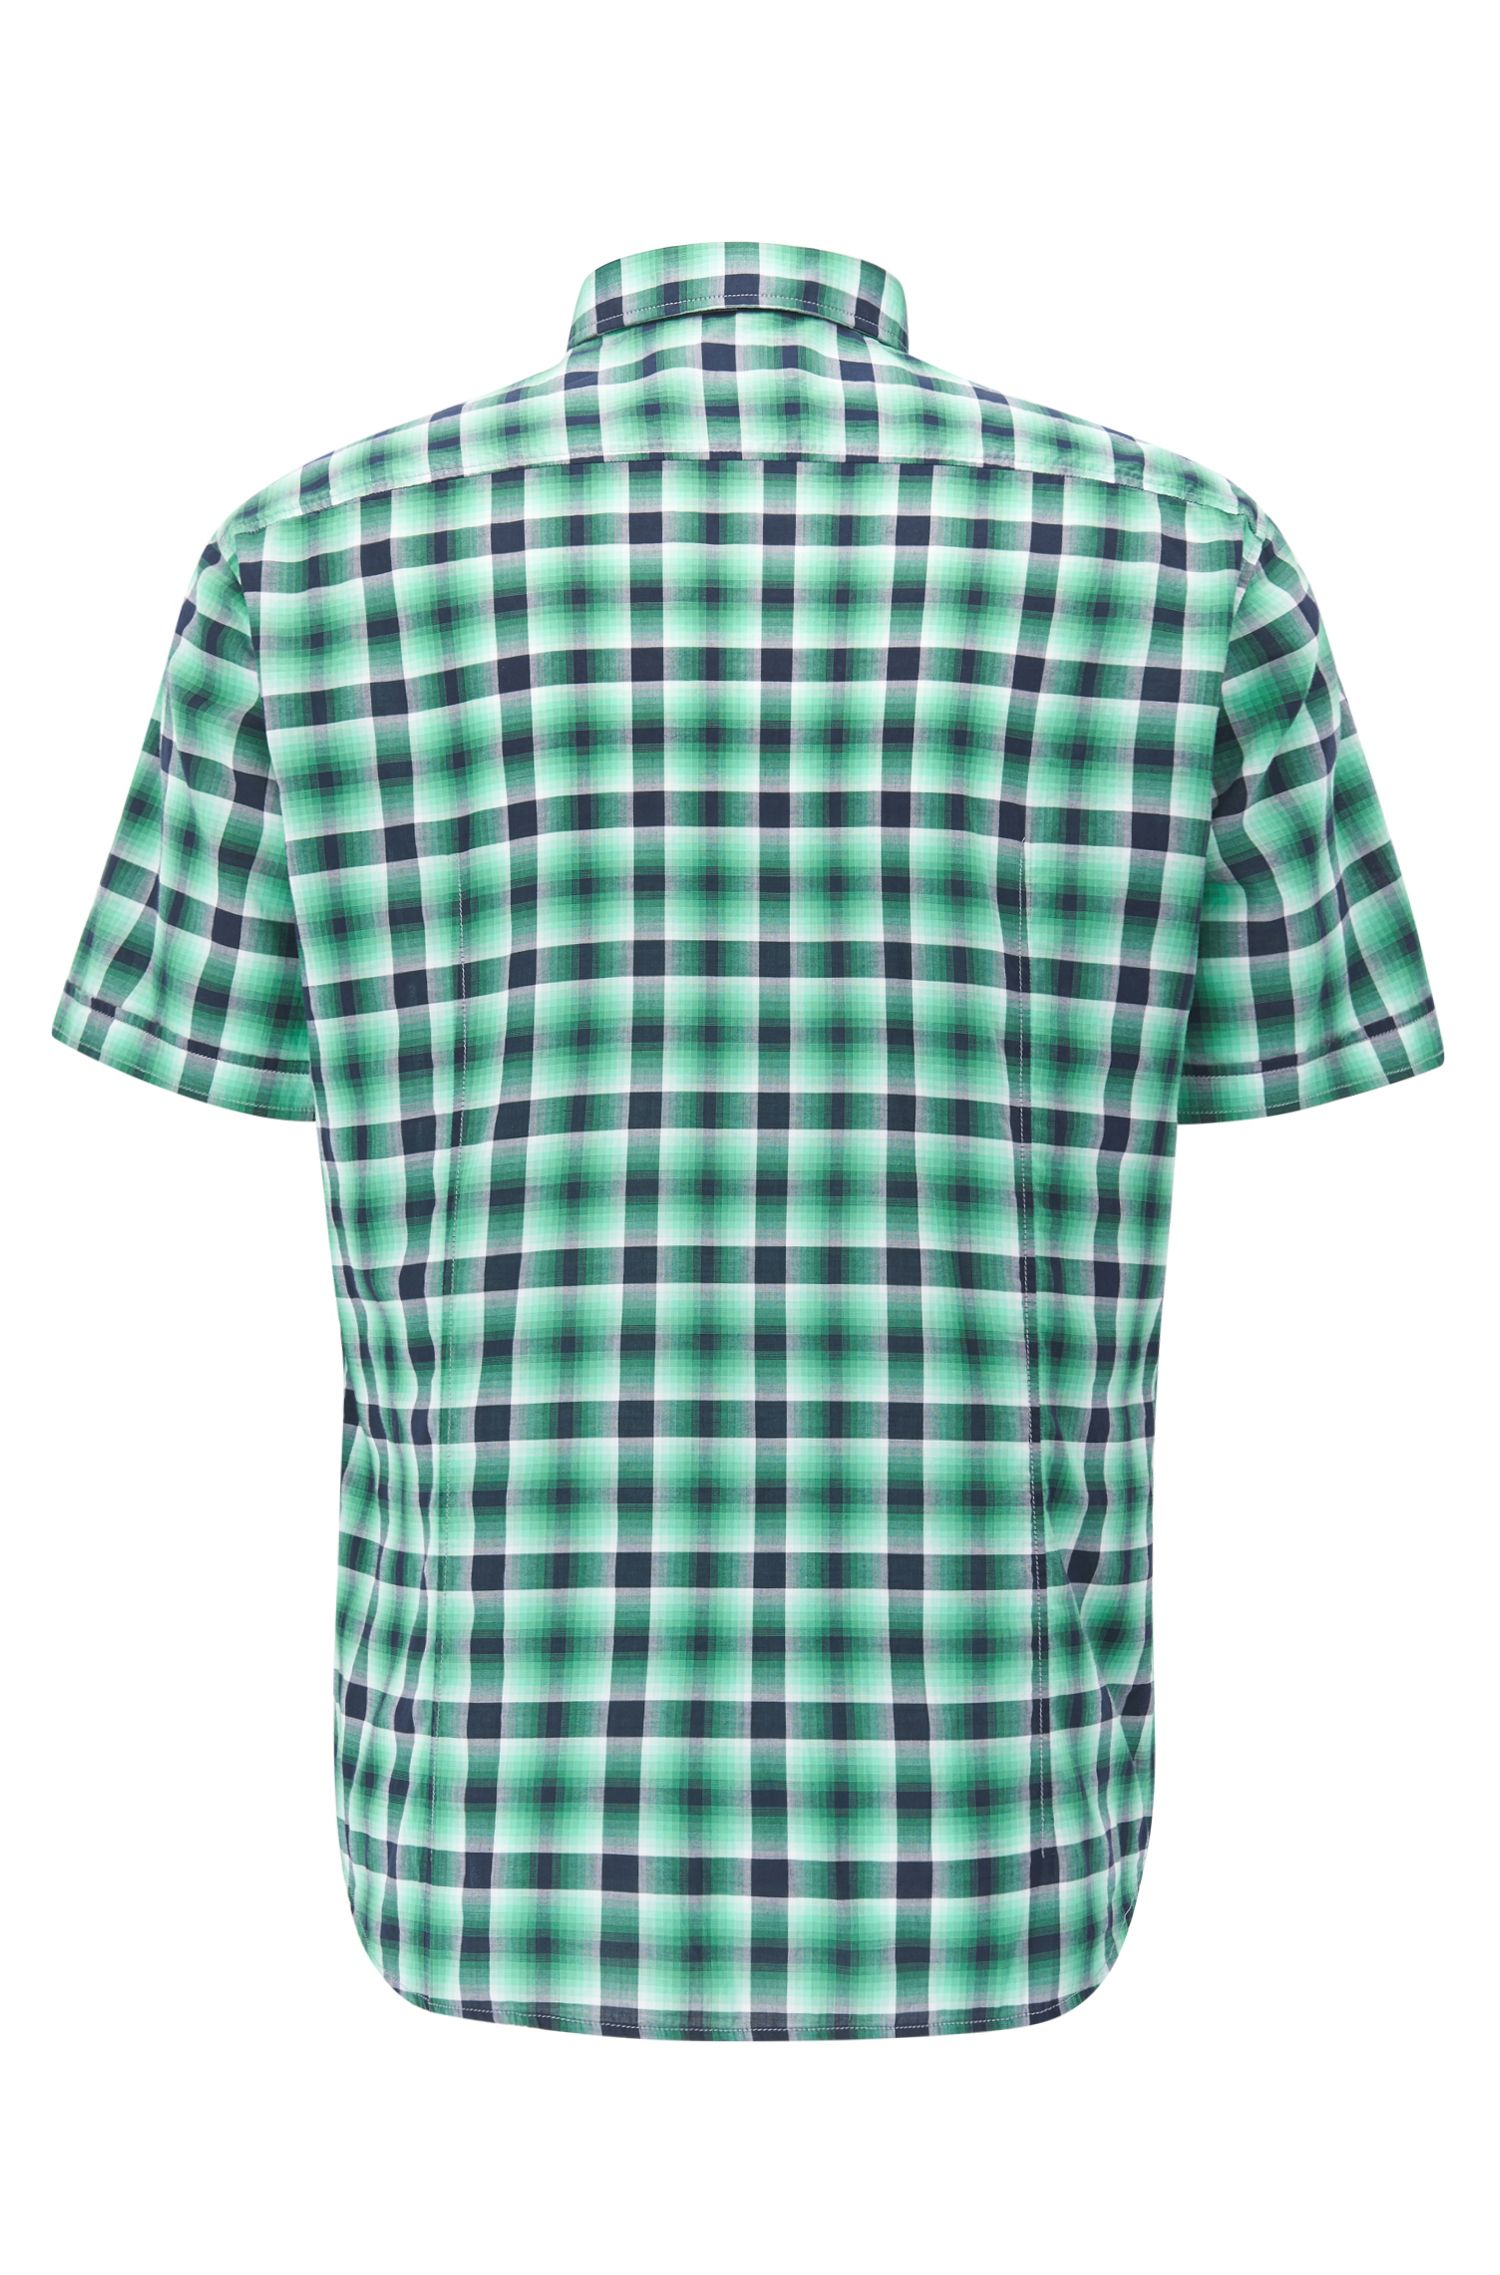 Short-sleeved check cotton shirt in a regular fit